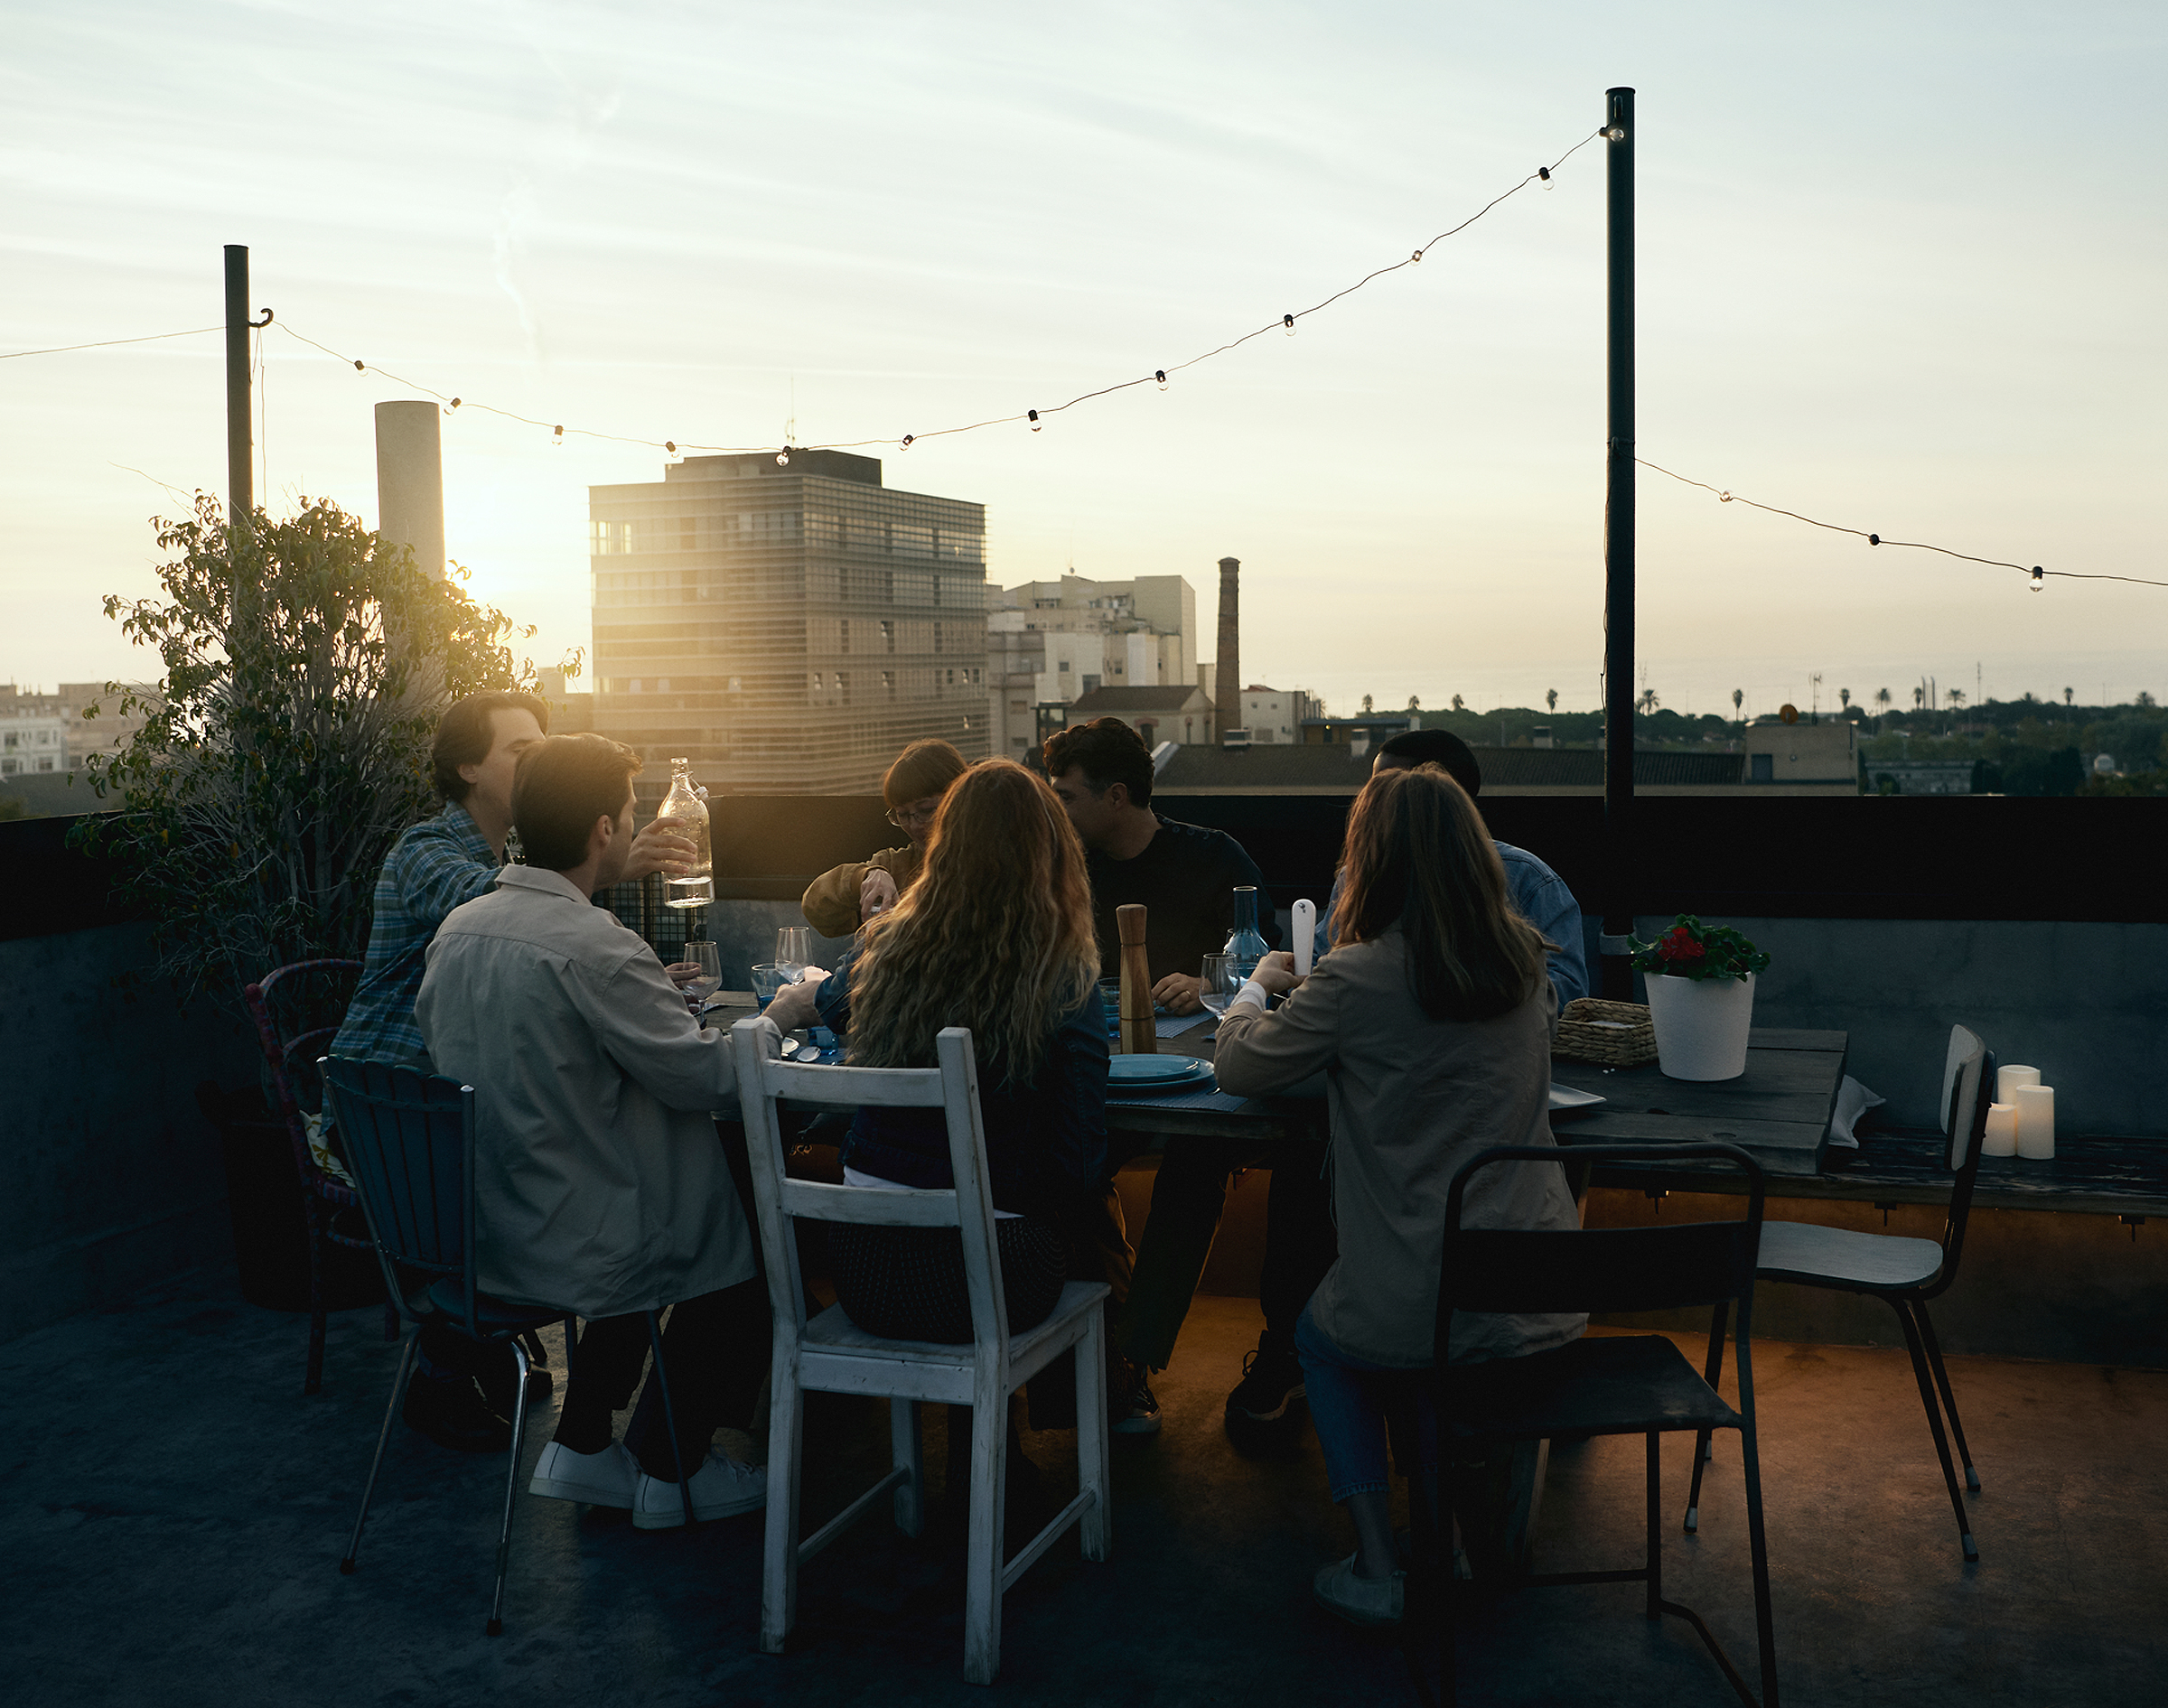 A group of friends is having dinner on a roof top as the sun sets in the city landscape behind.